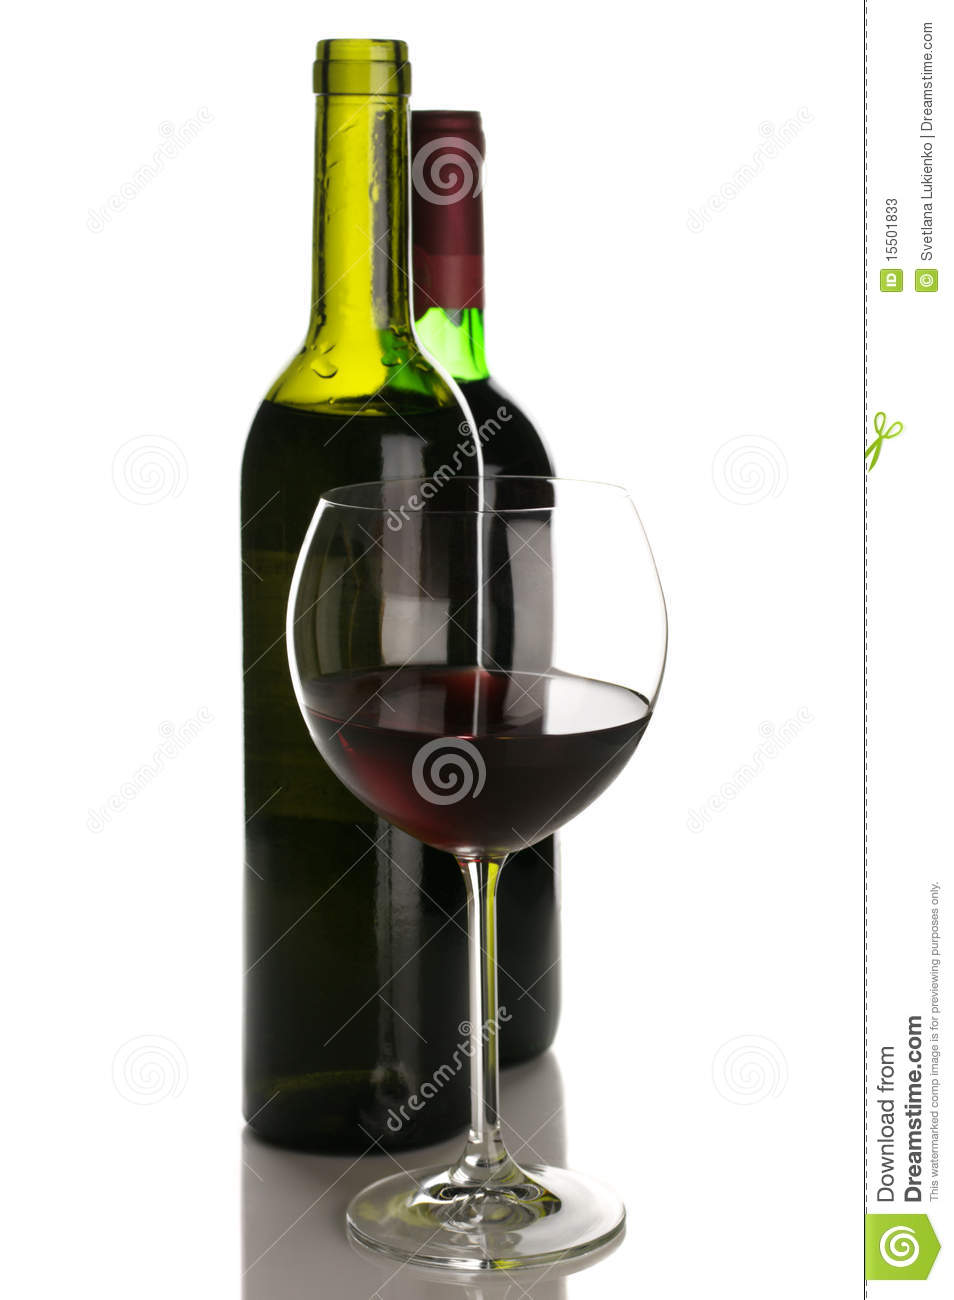 Bottles and glass of red wine stock photos image 15501833 for Red glass wine bottles suppliers